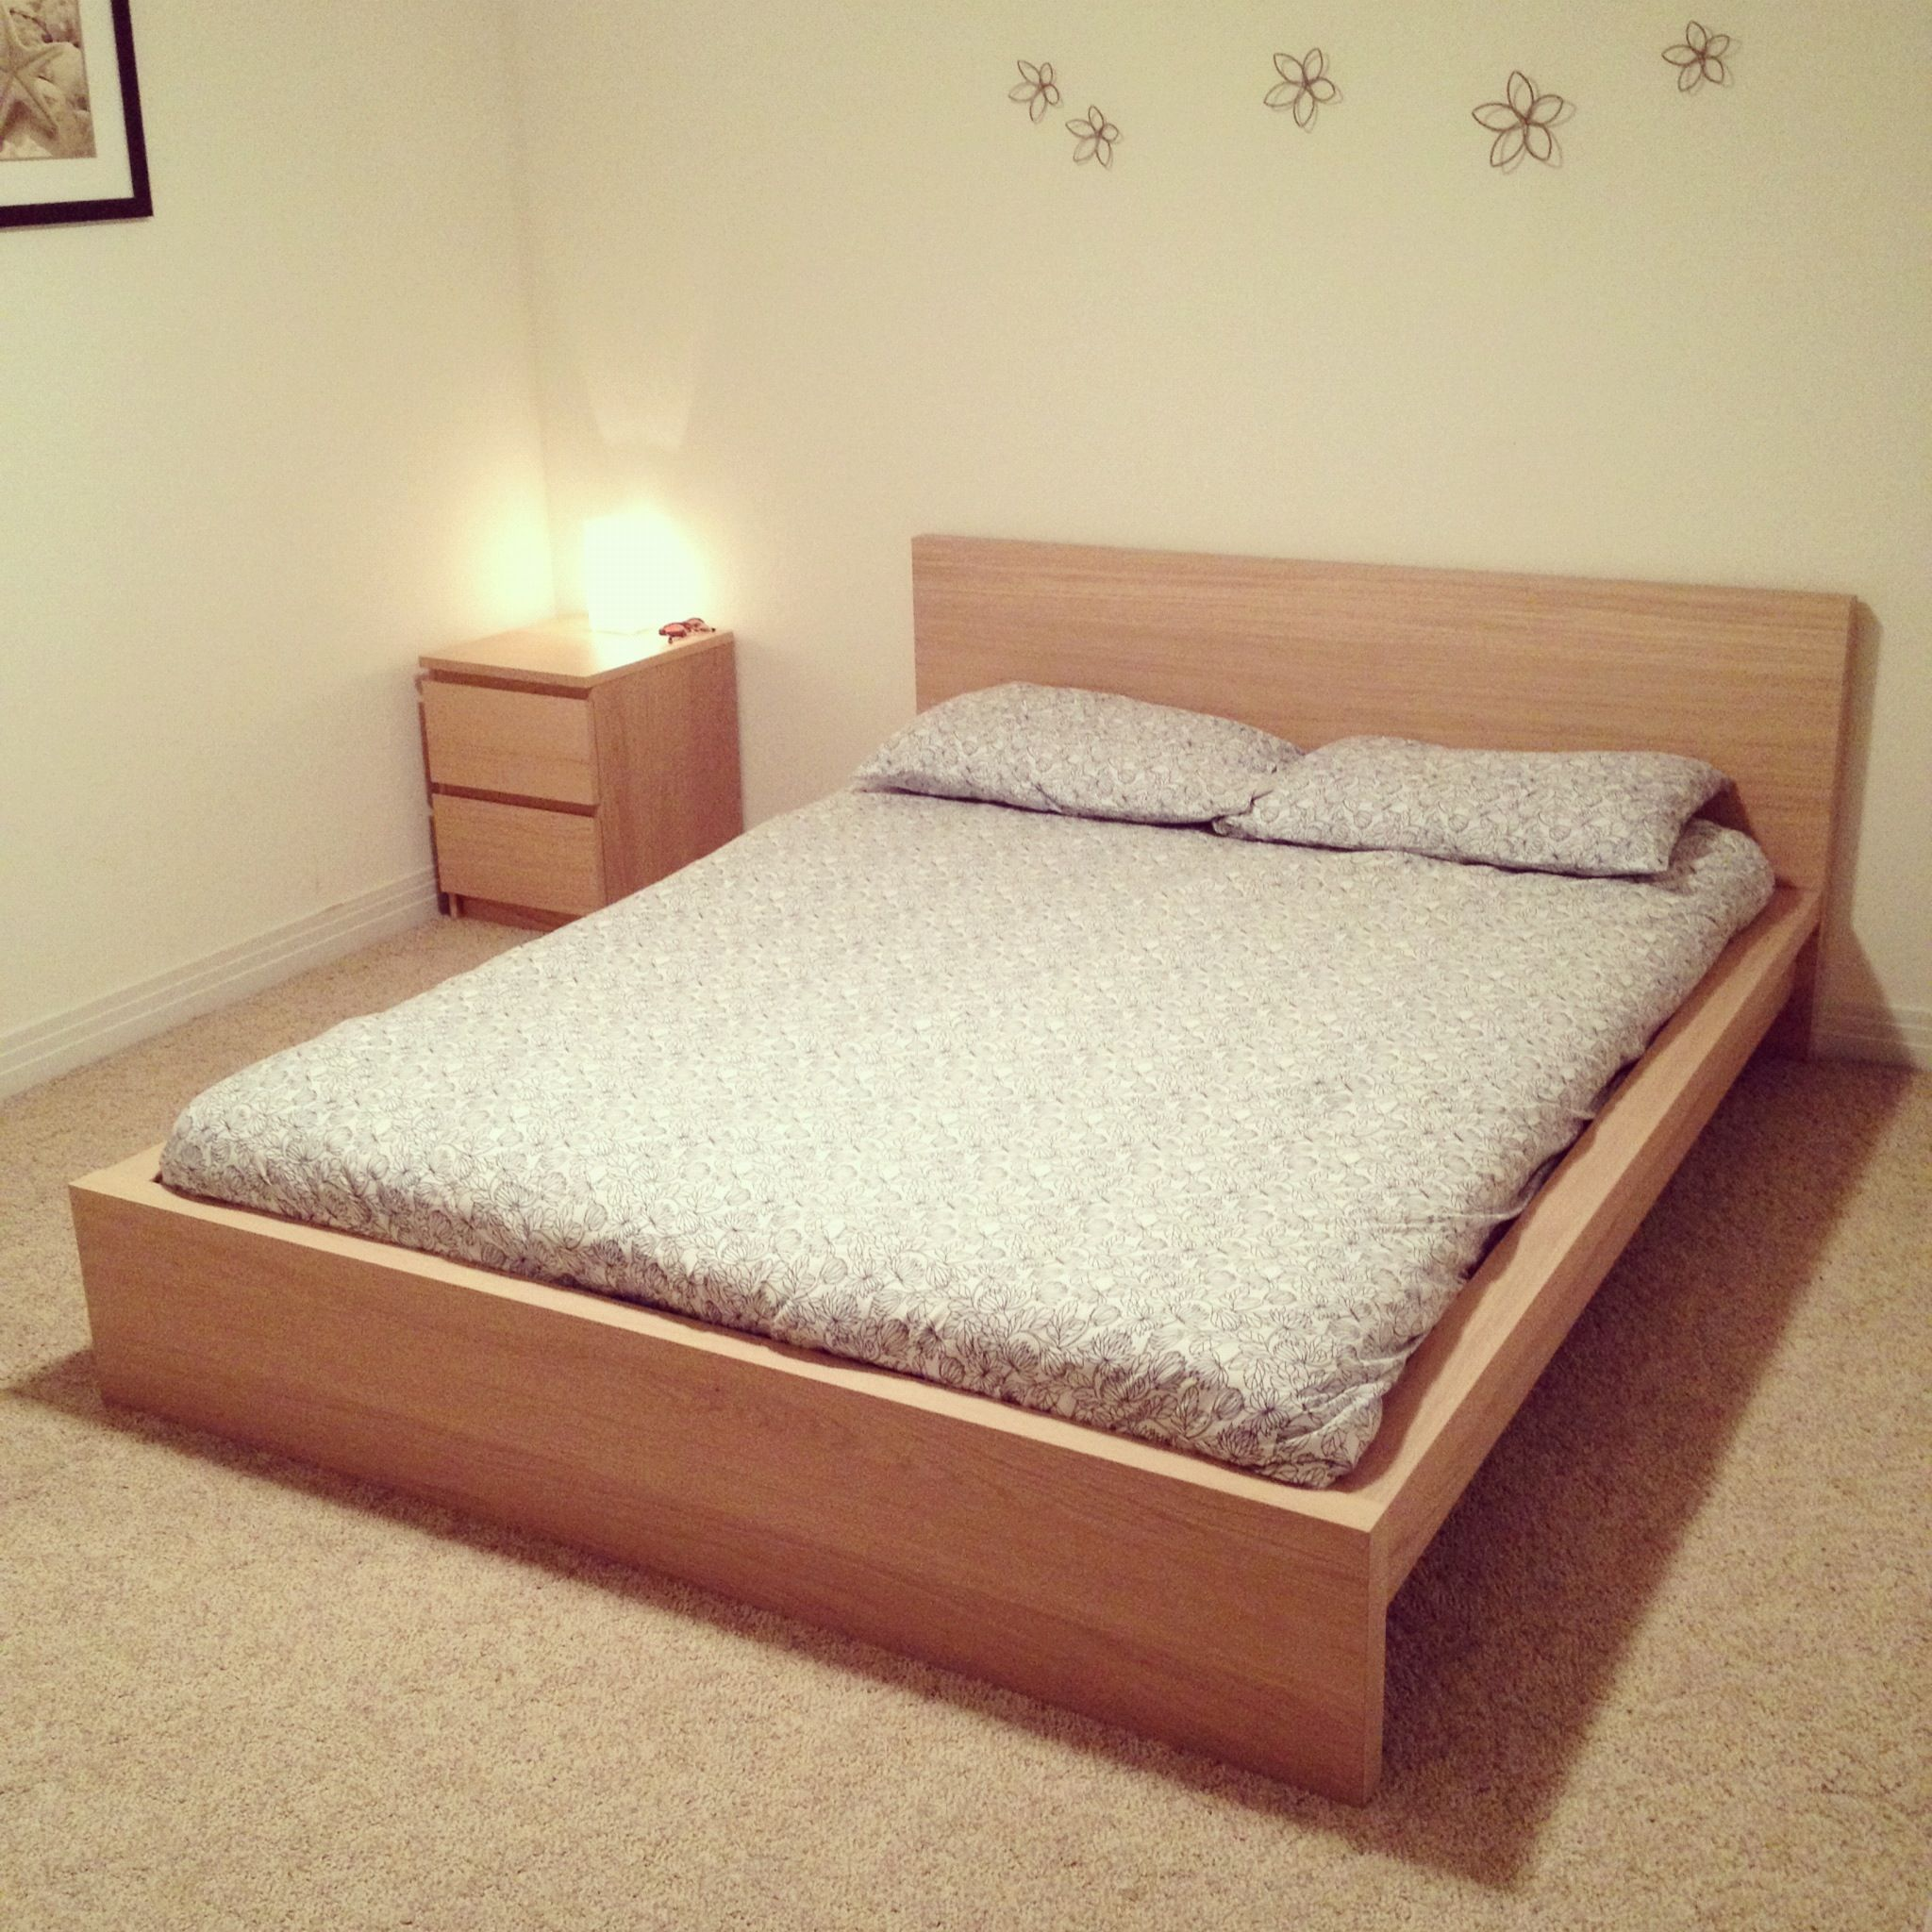 ikea malm bed with side dresser For the Home Pinterest Ikea